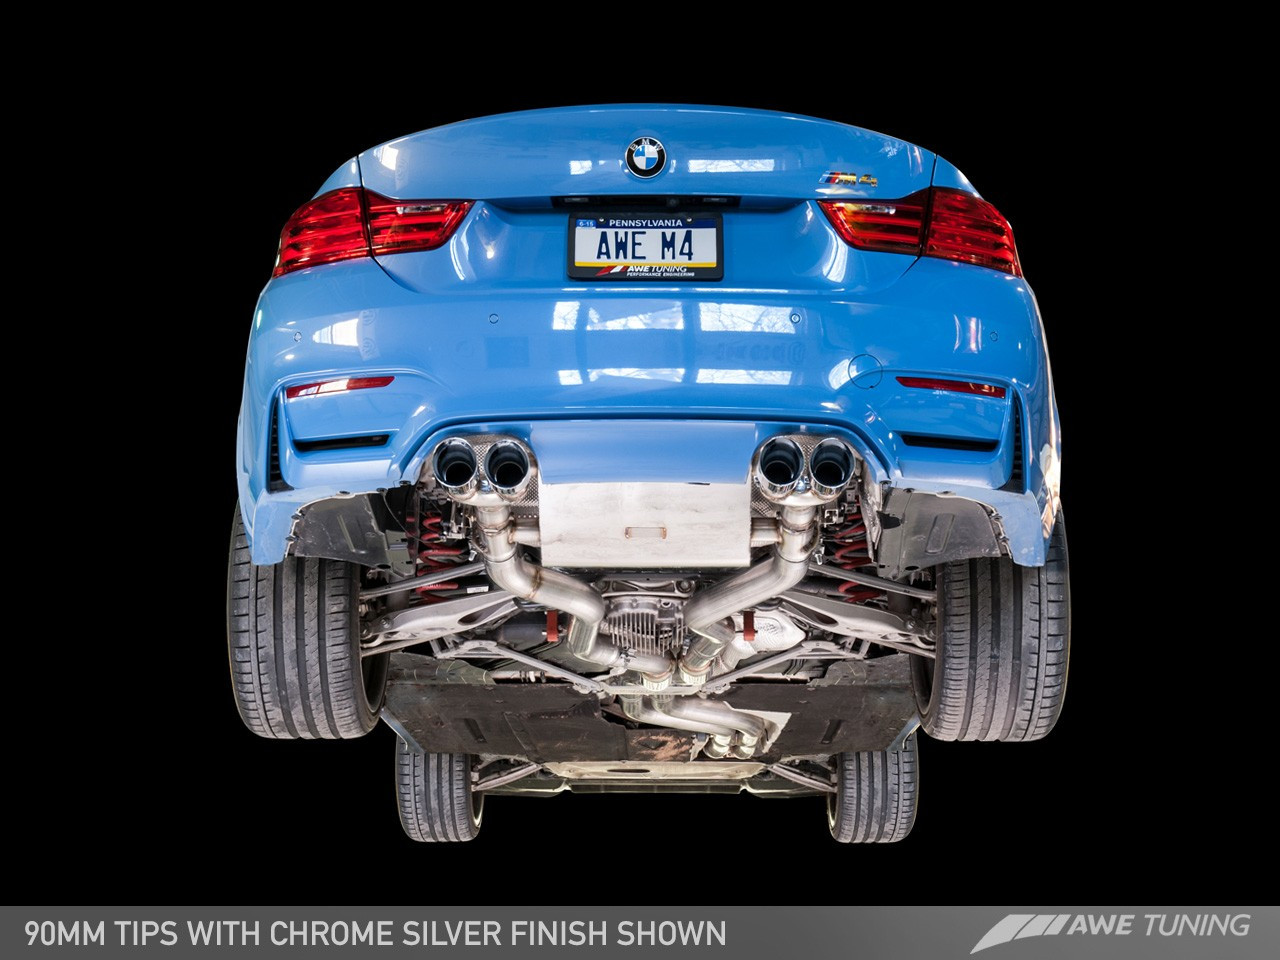 AWE Tuning BMW F8x M4 SwitchPath Exhaust System